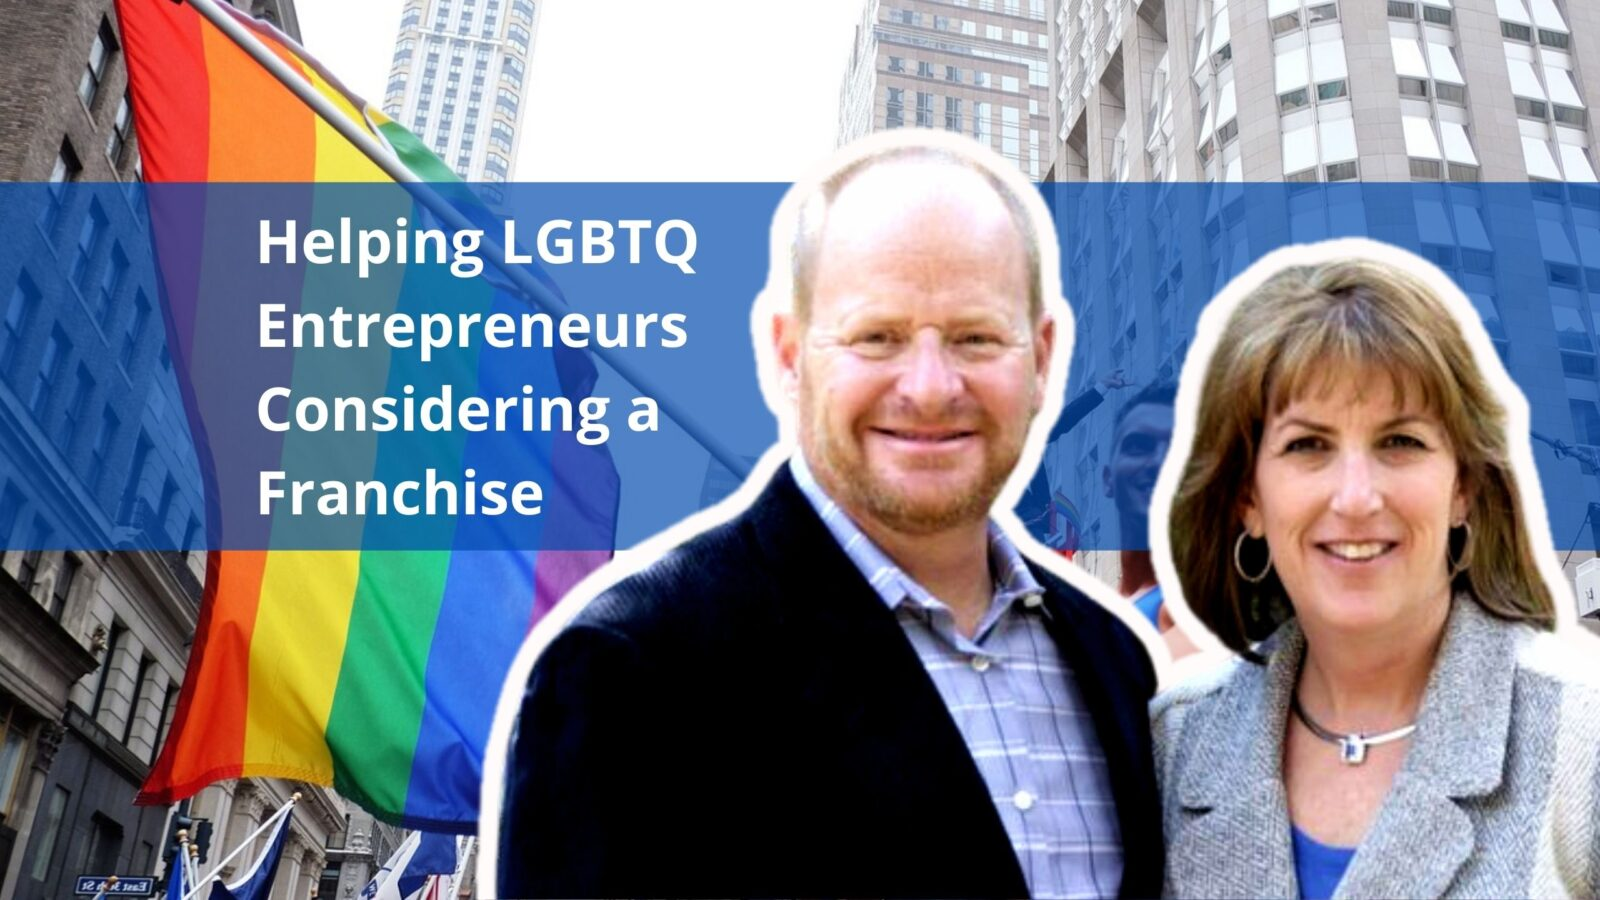 Franchise Connect Pro Craige Sue Derene LGBTQ entrepreneurs business owners gay lesbian queer online community OutBuro (2)